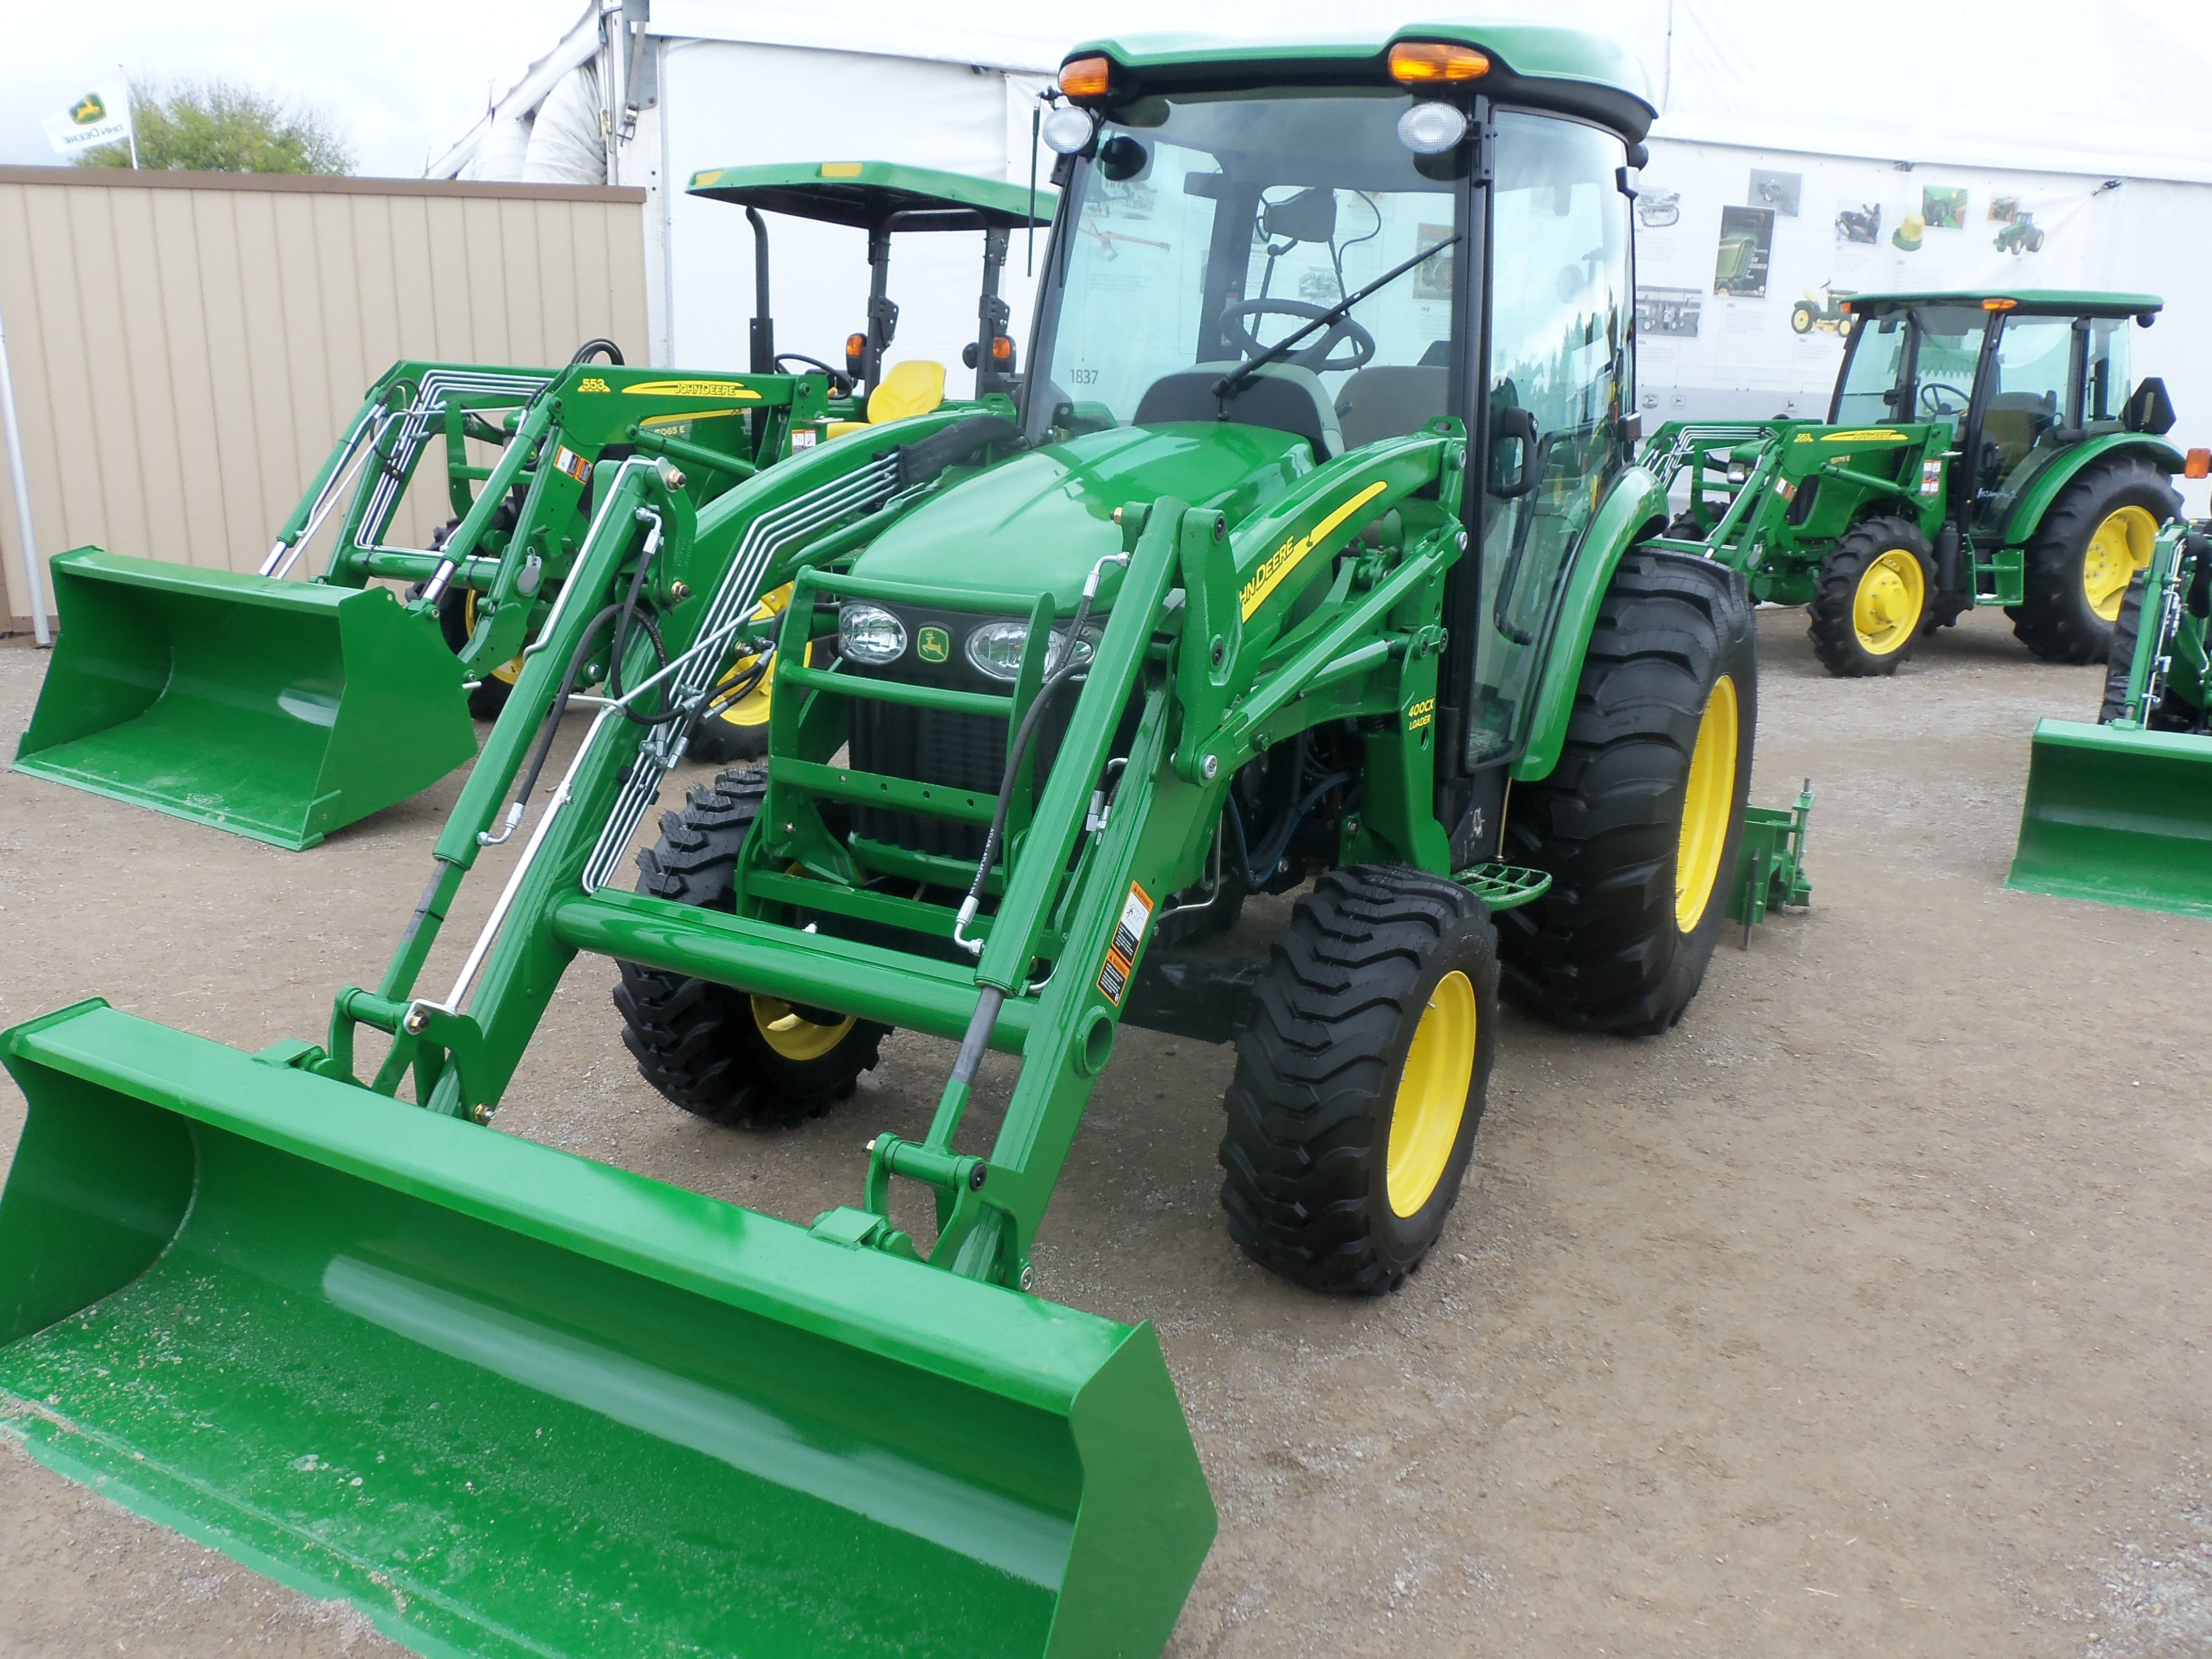 hight resolution of john deere 4320 cab tractor with 400cx loader